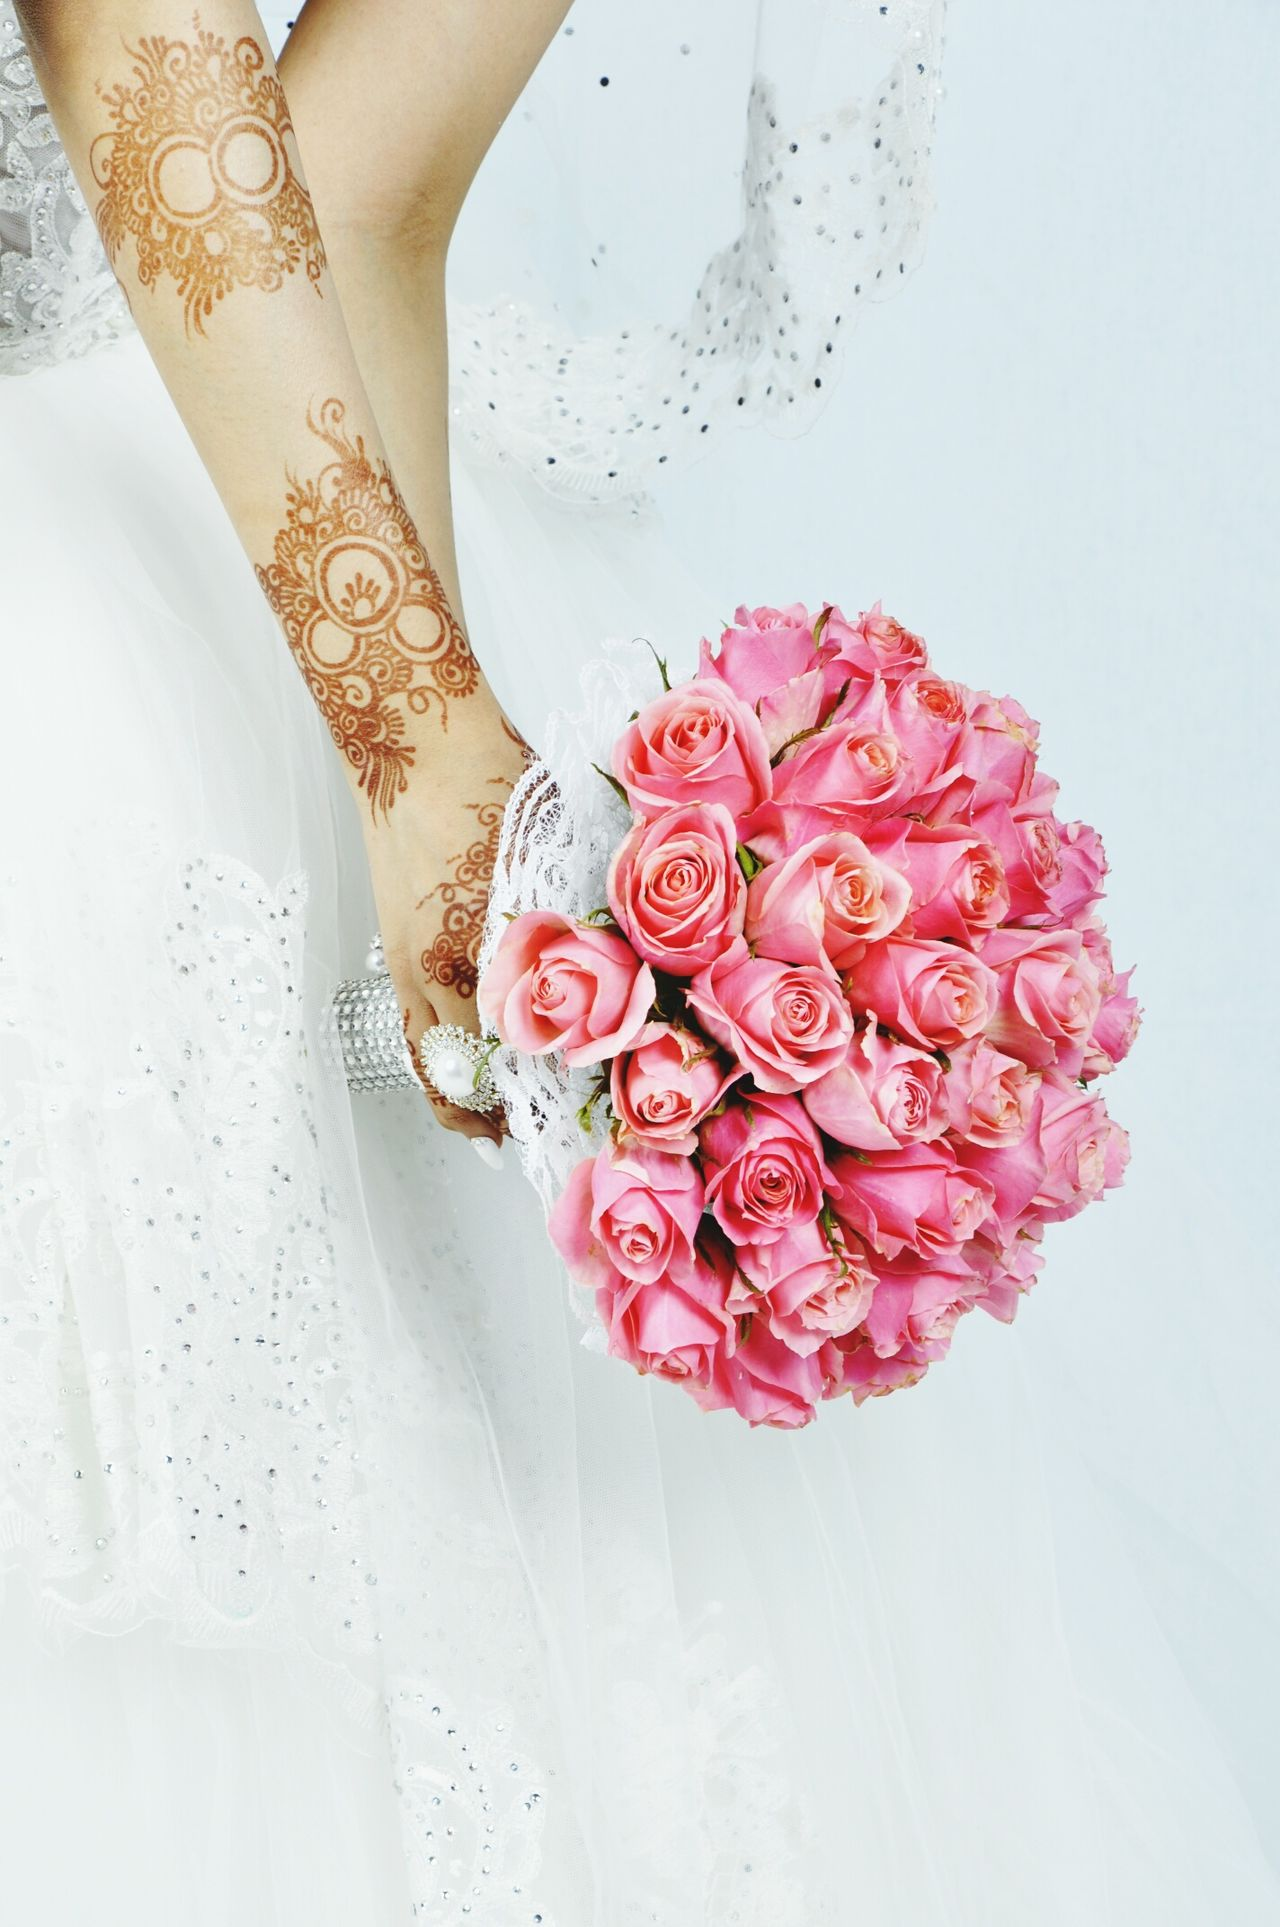 Flower Wedding Bride Bride Bouquet Wedding Dress Pink Color Culture Arabian Wedding Henna Tattoo ❤ Saudi Arabia